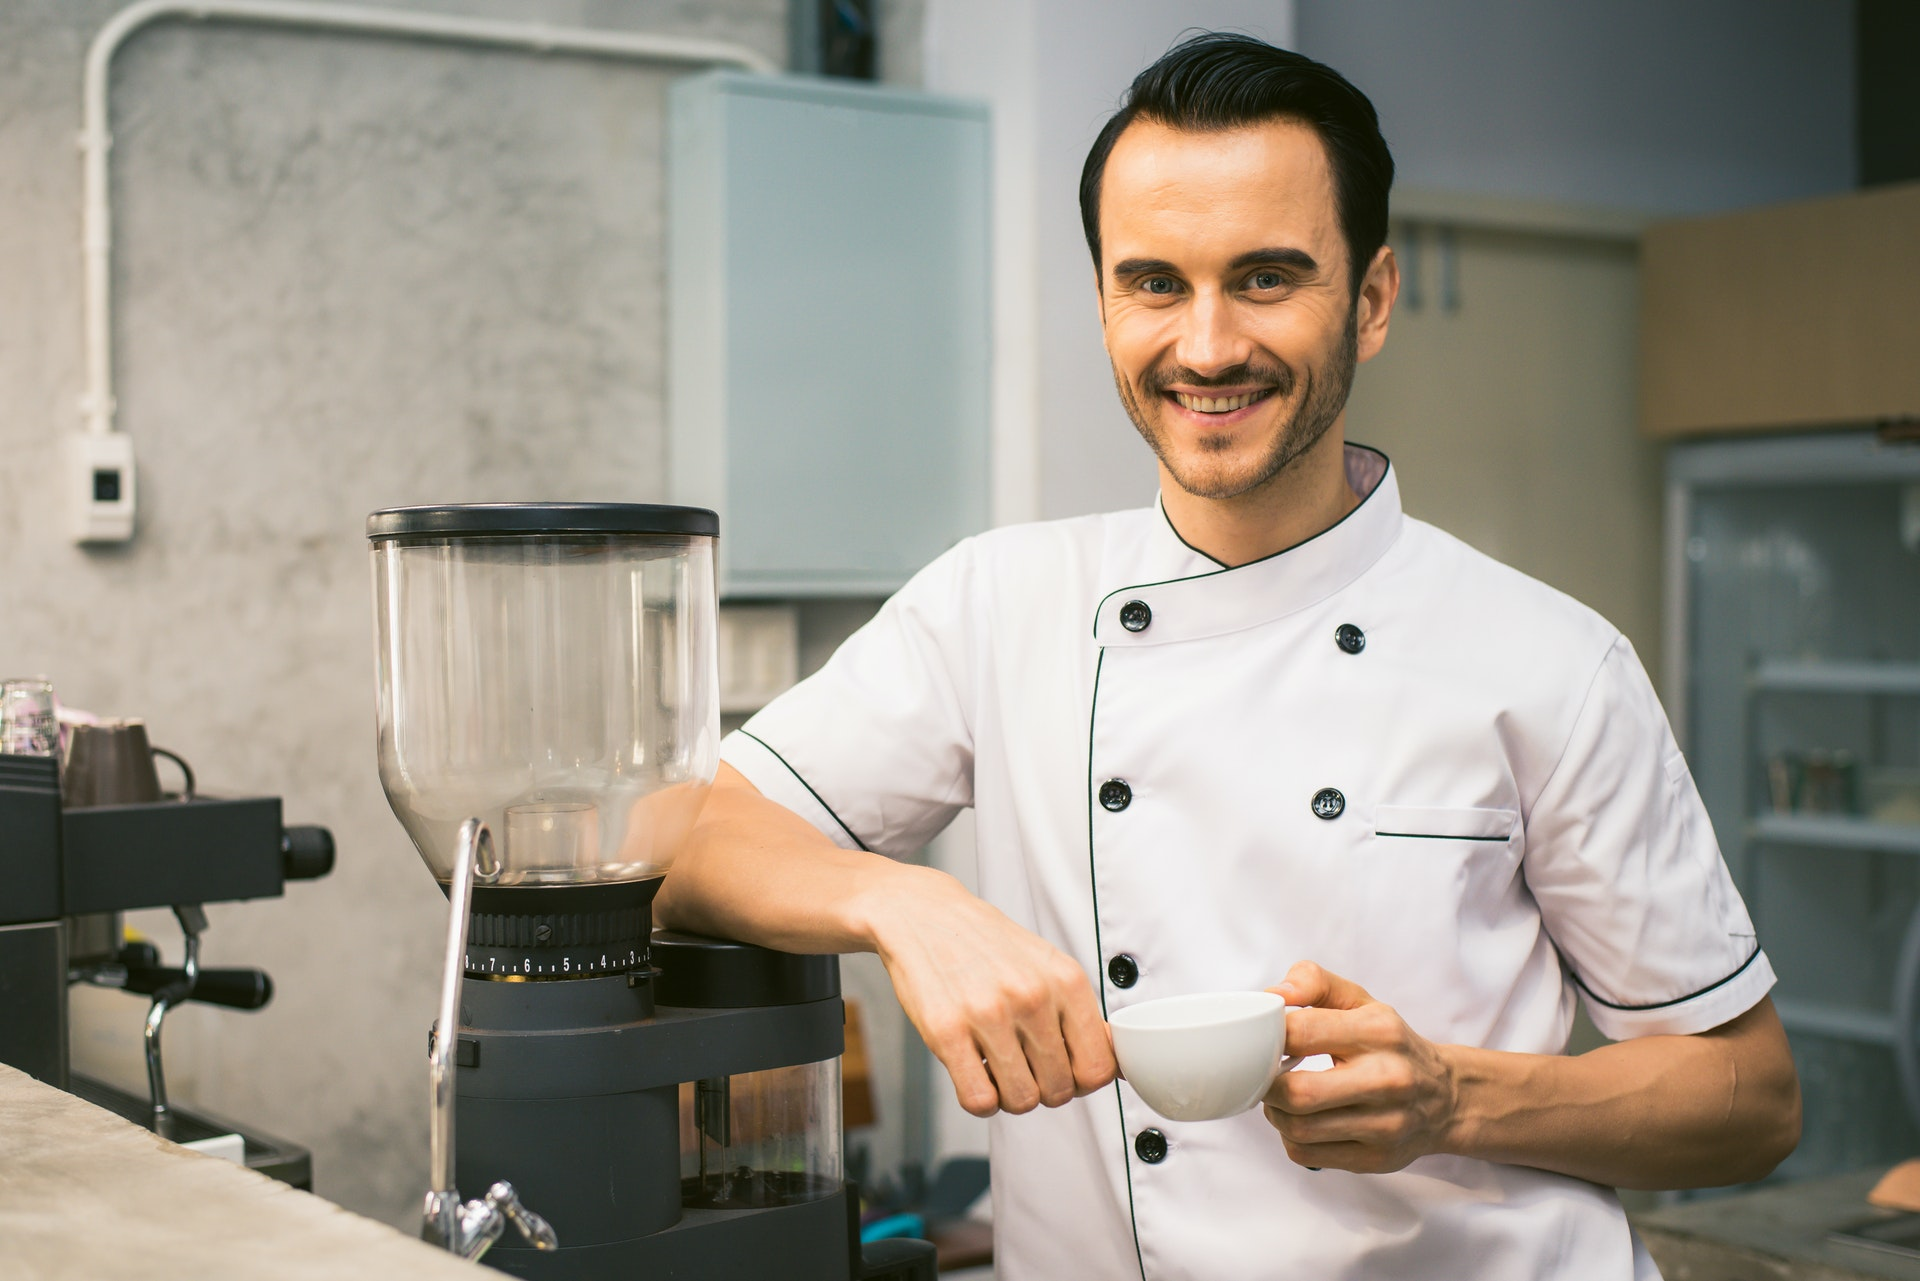 chef standing at coffee maker with cup in hand